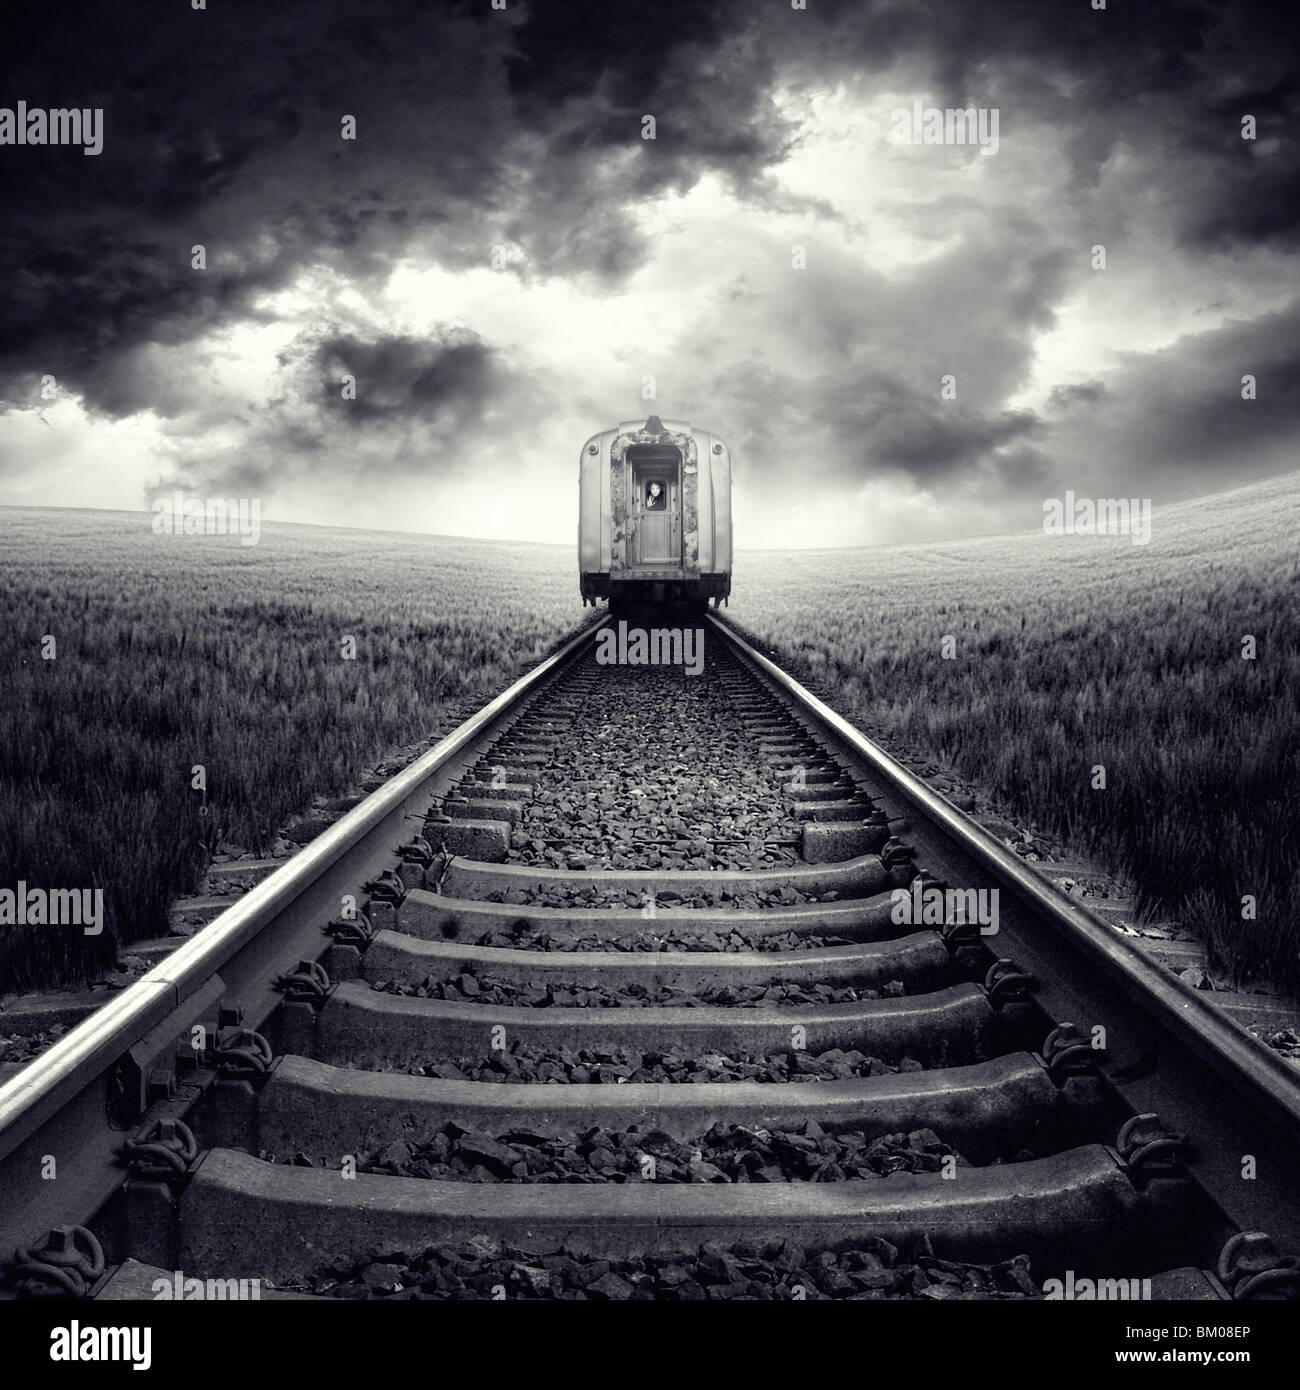 A rear view of a train on rails passing through a field of corn with stormy skies - Stock Image